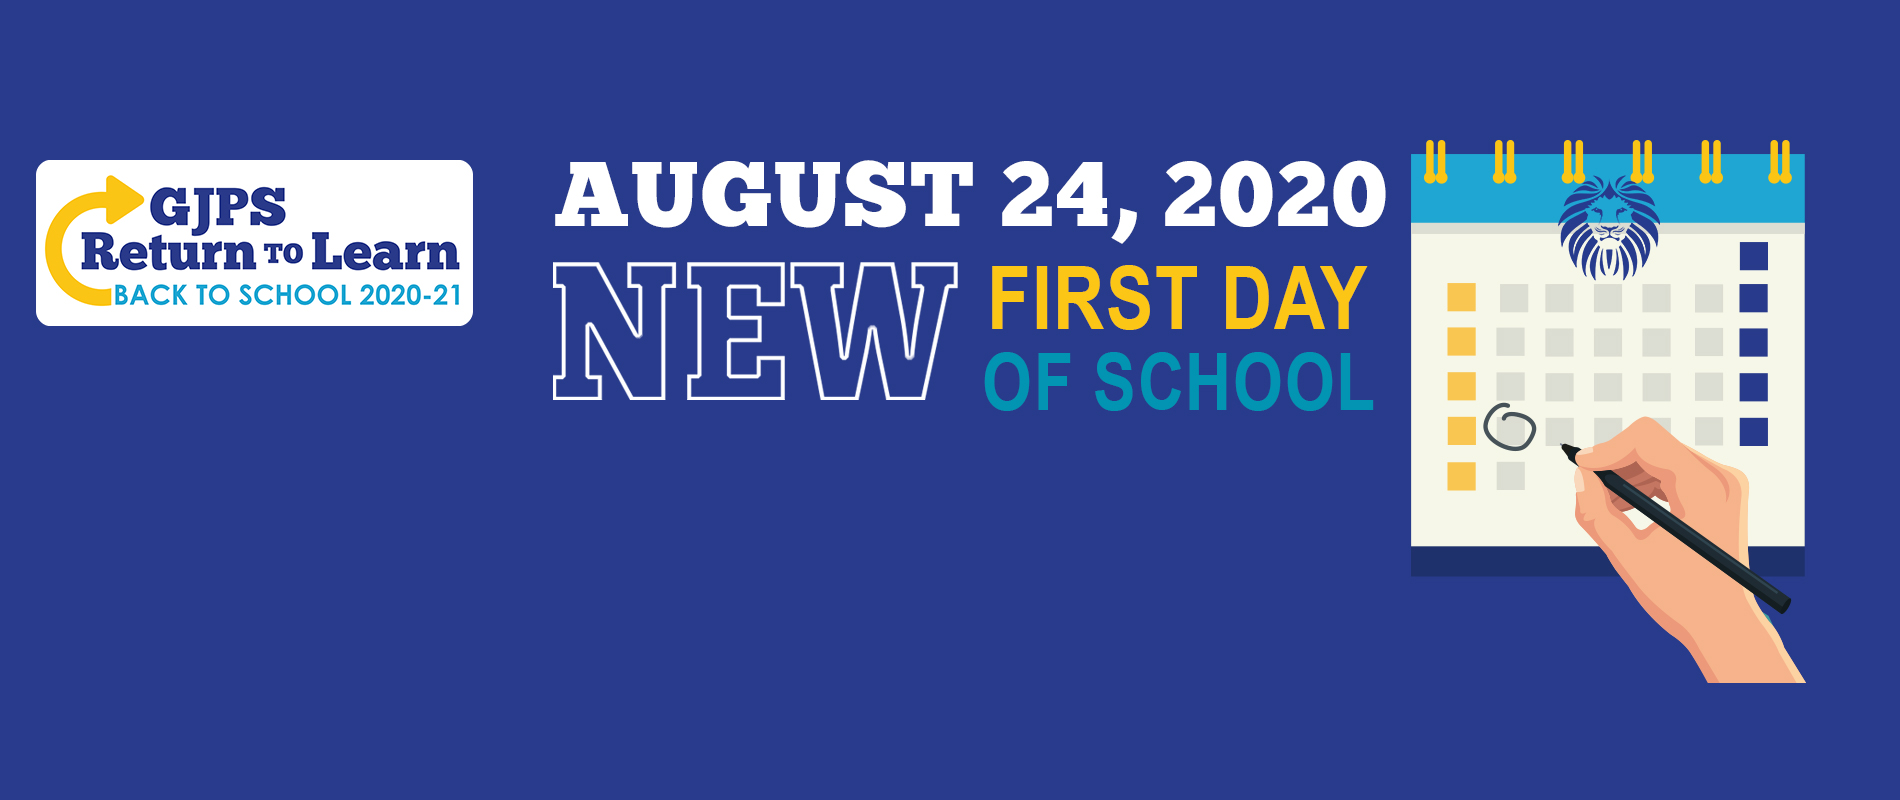 New Back to School Date August 24